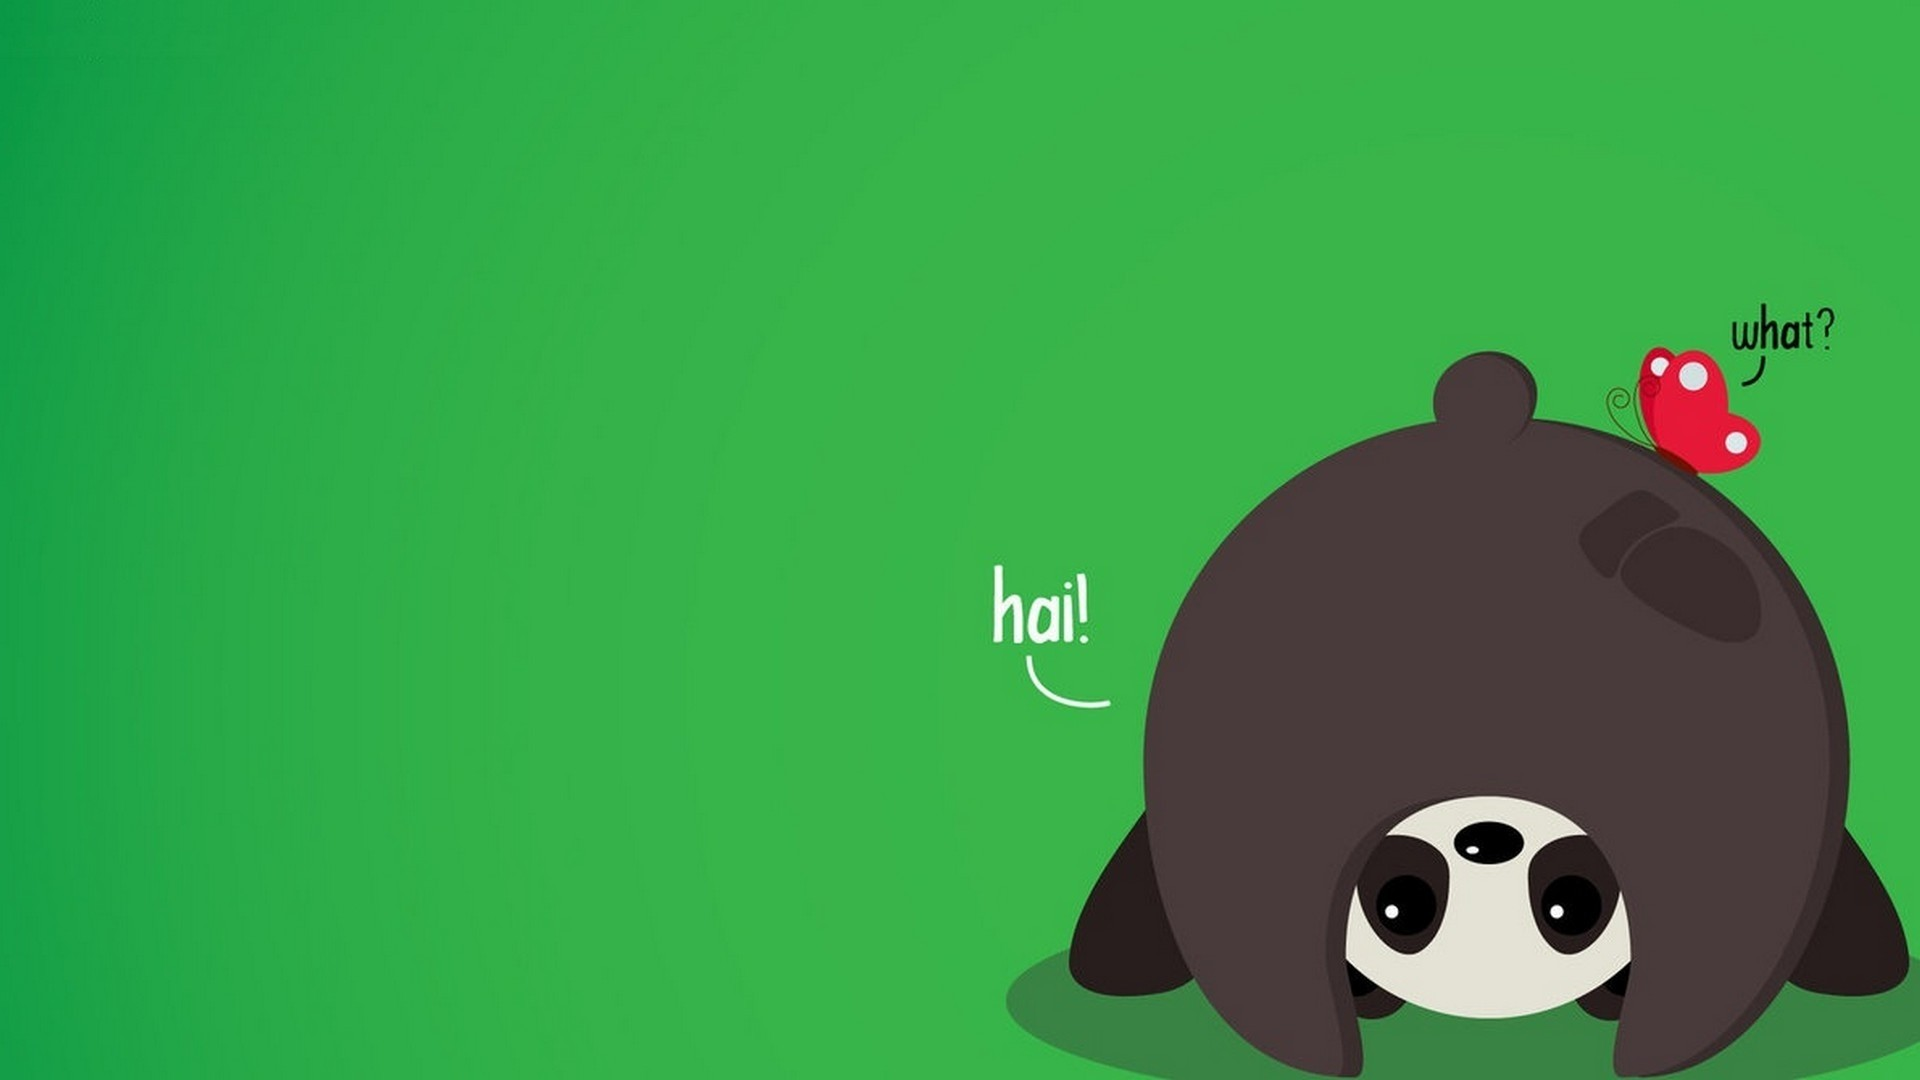 Panda Minimalist wallpaper for pc